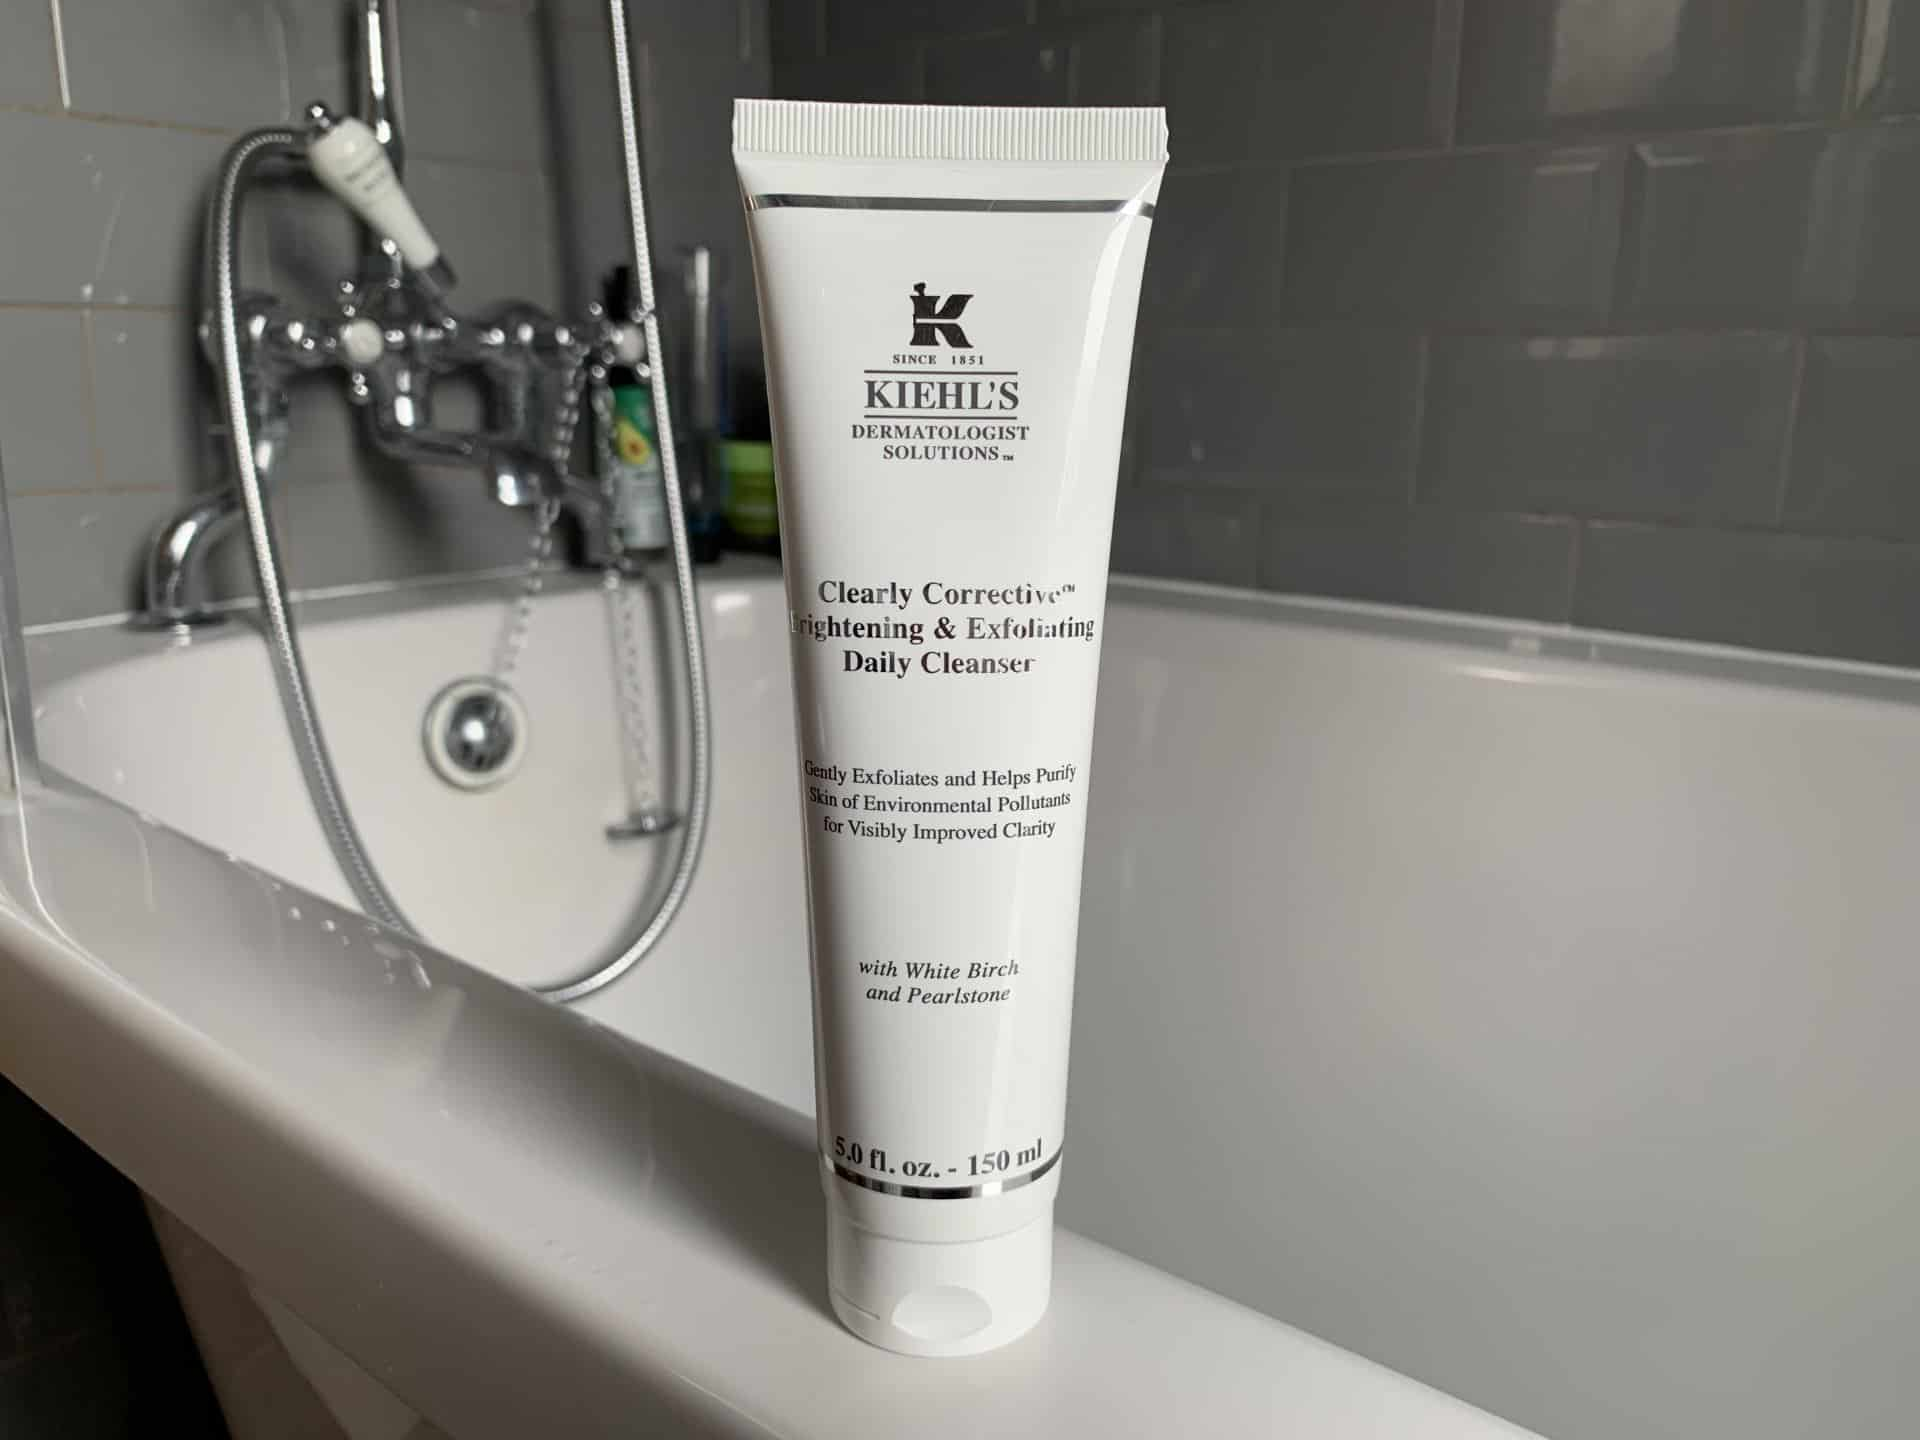 Kiehl's Clearly Corrective Brightening & Exfoliating Daily Cleanser